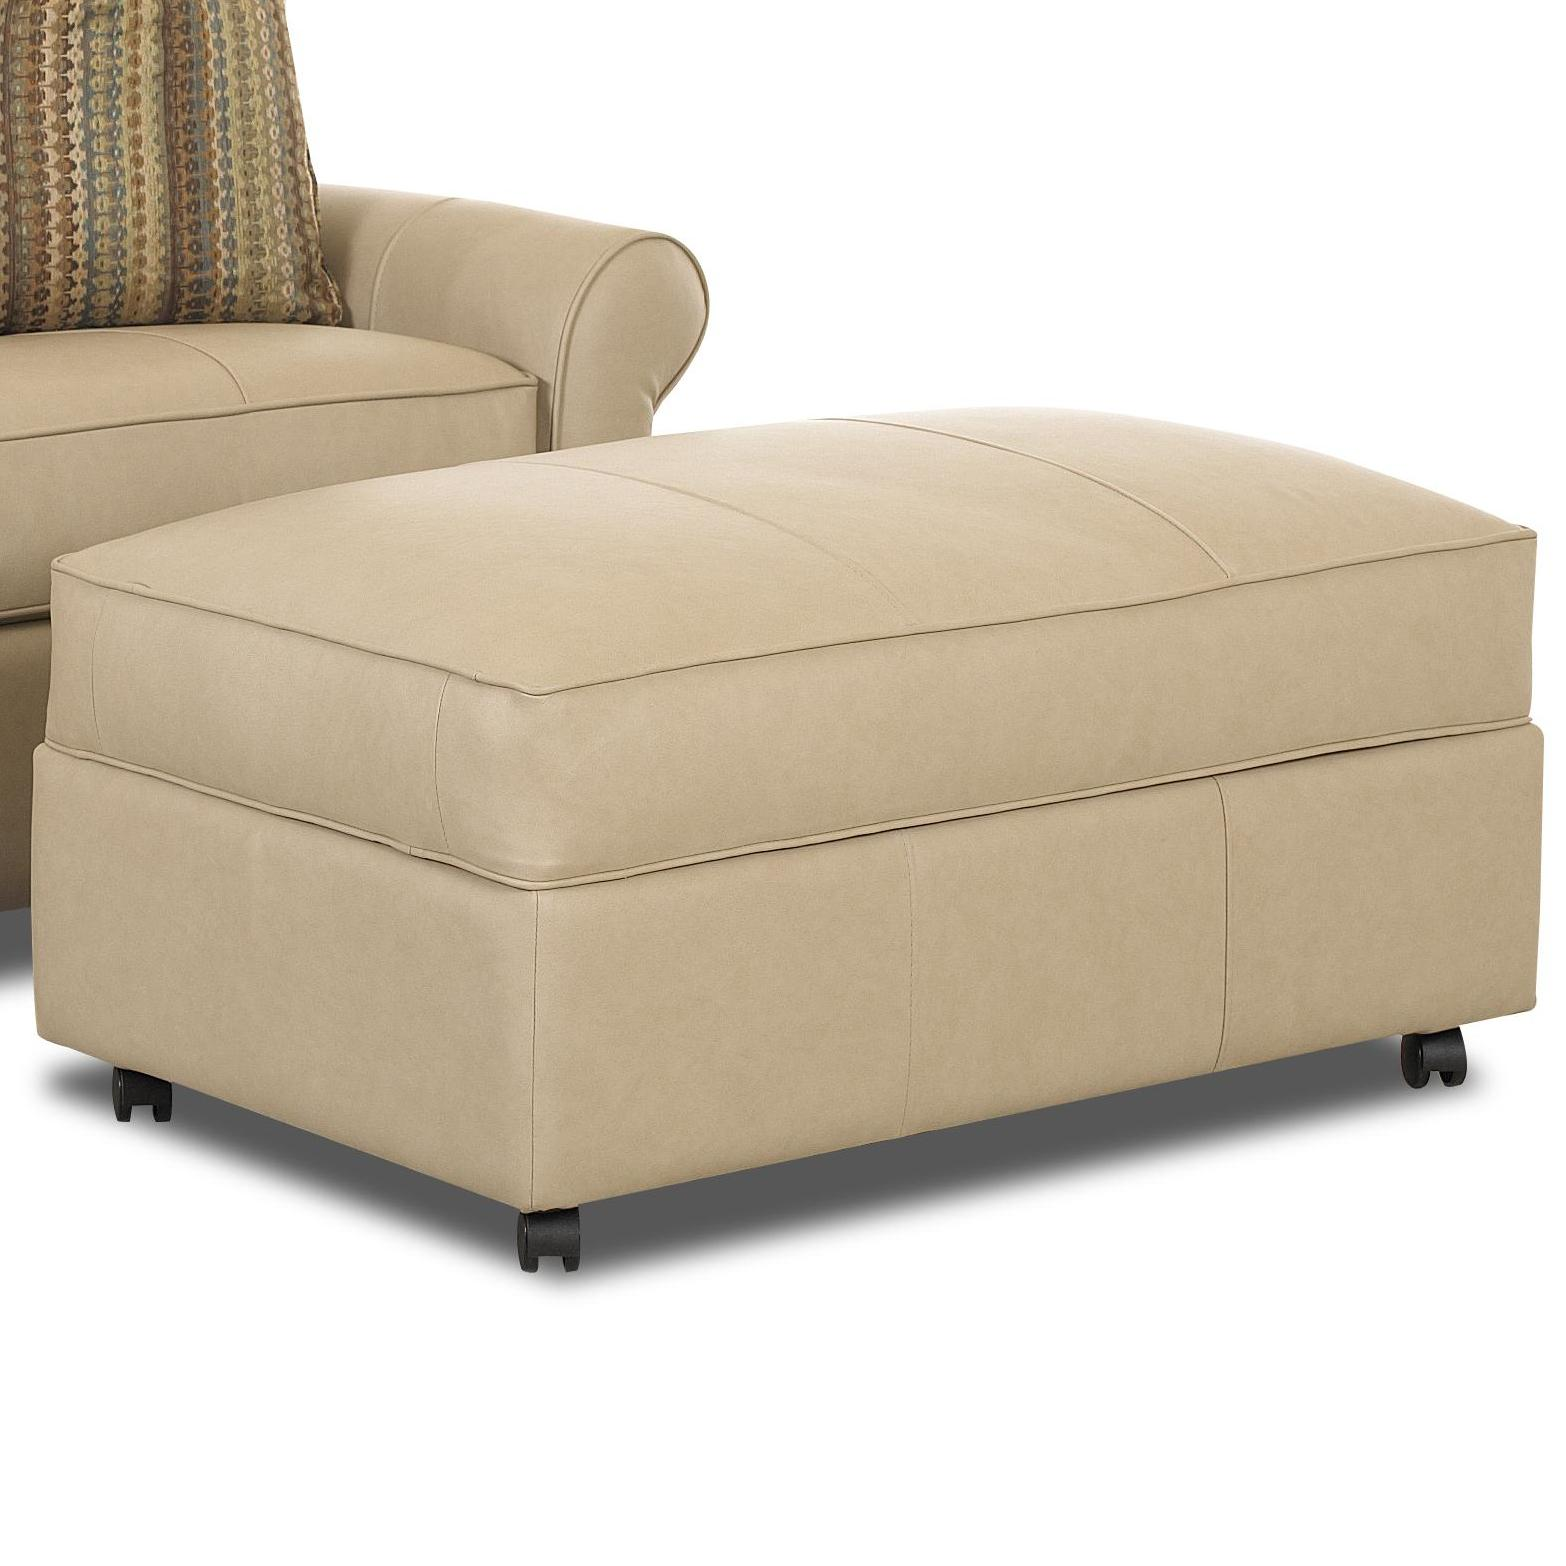 Klaussner Mayhew Large Rectangular Storage Ottoman With